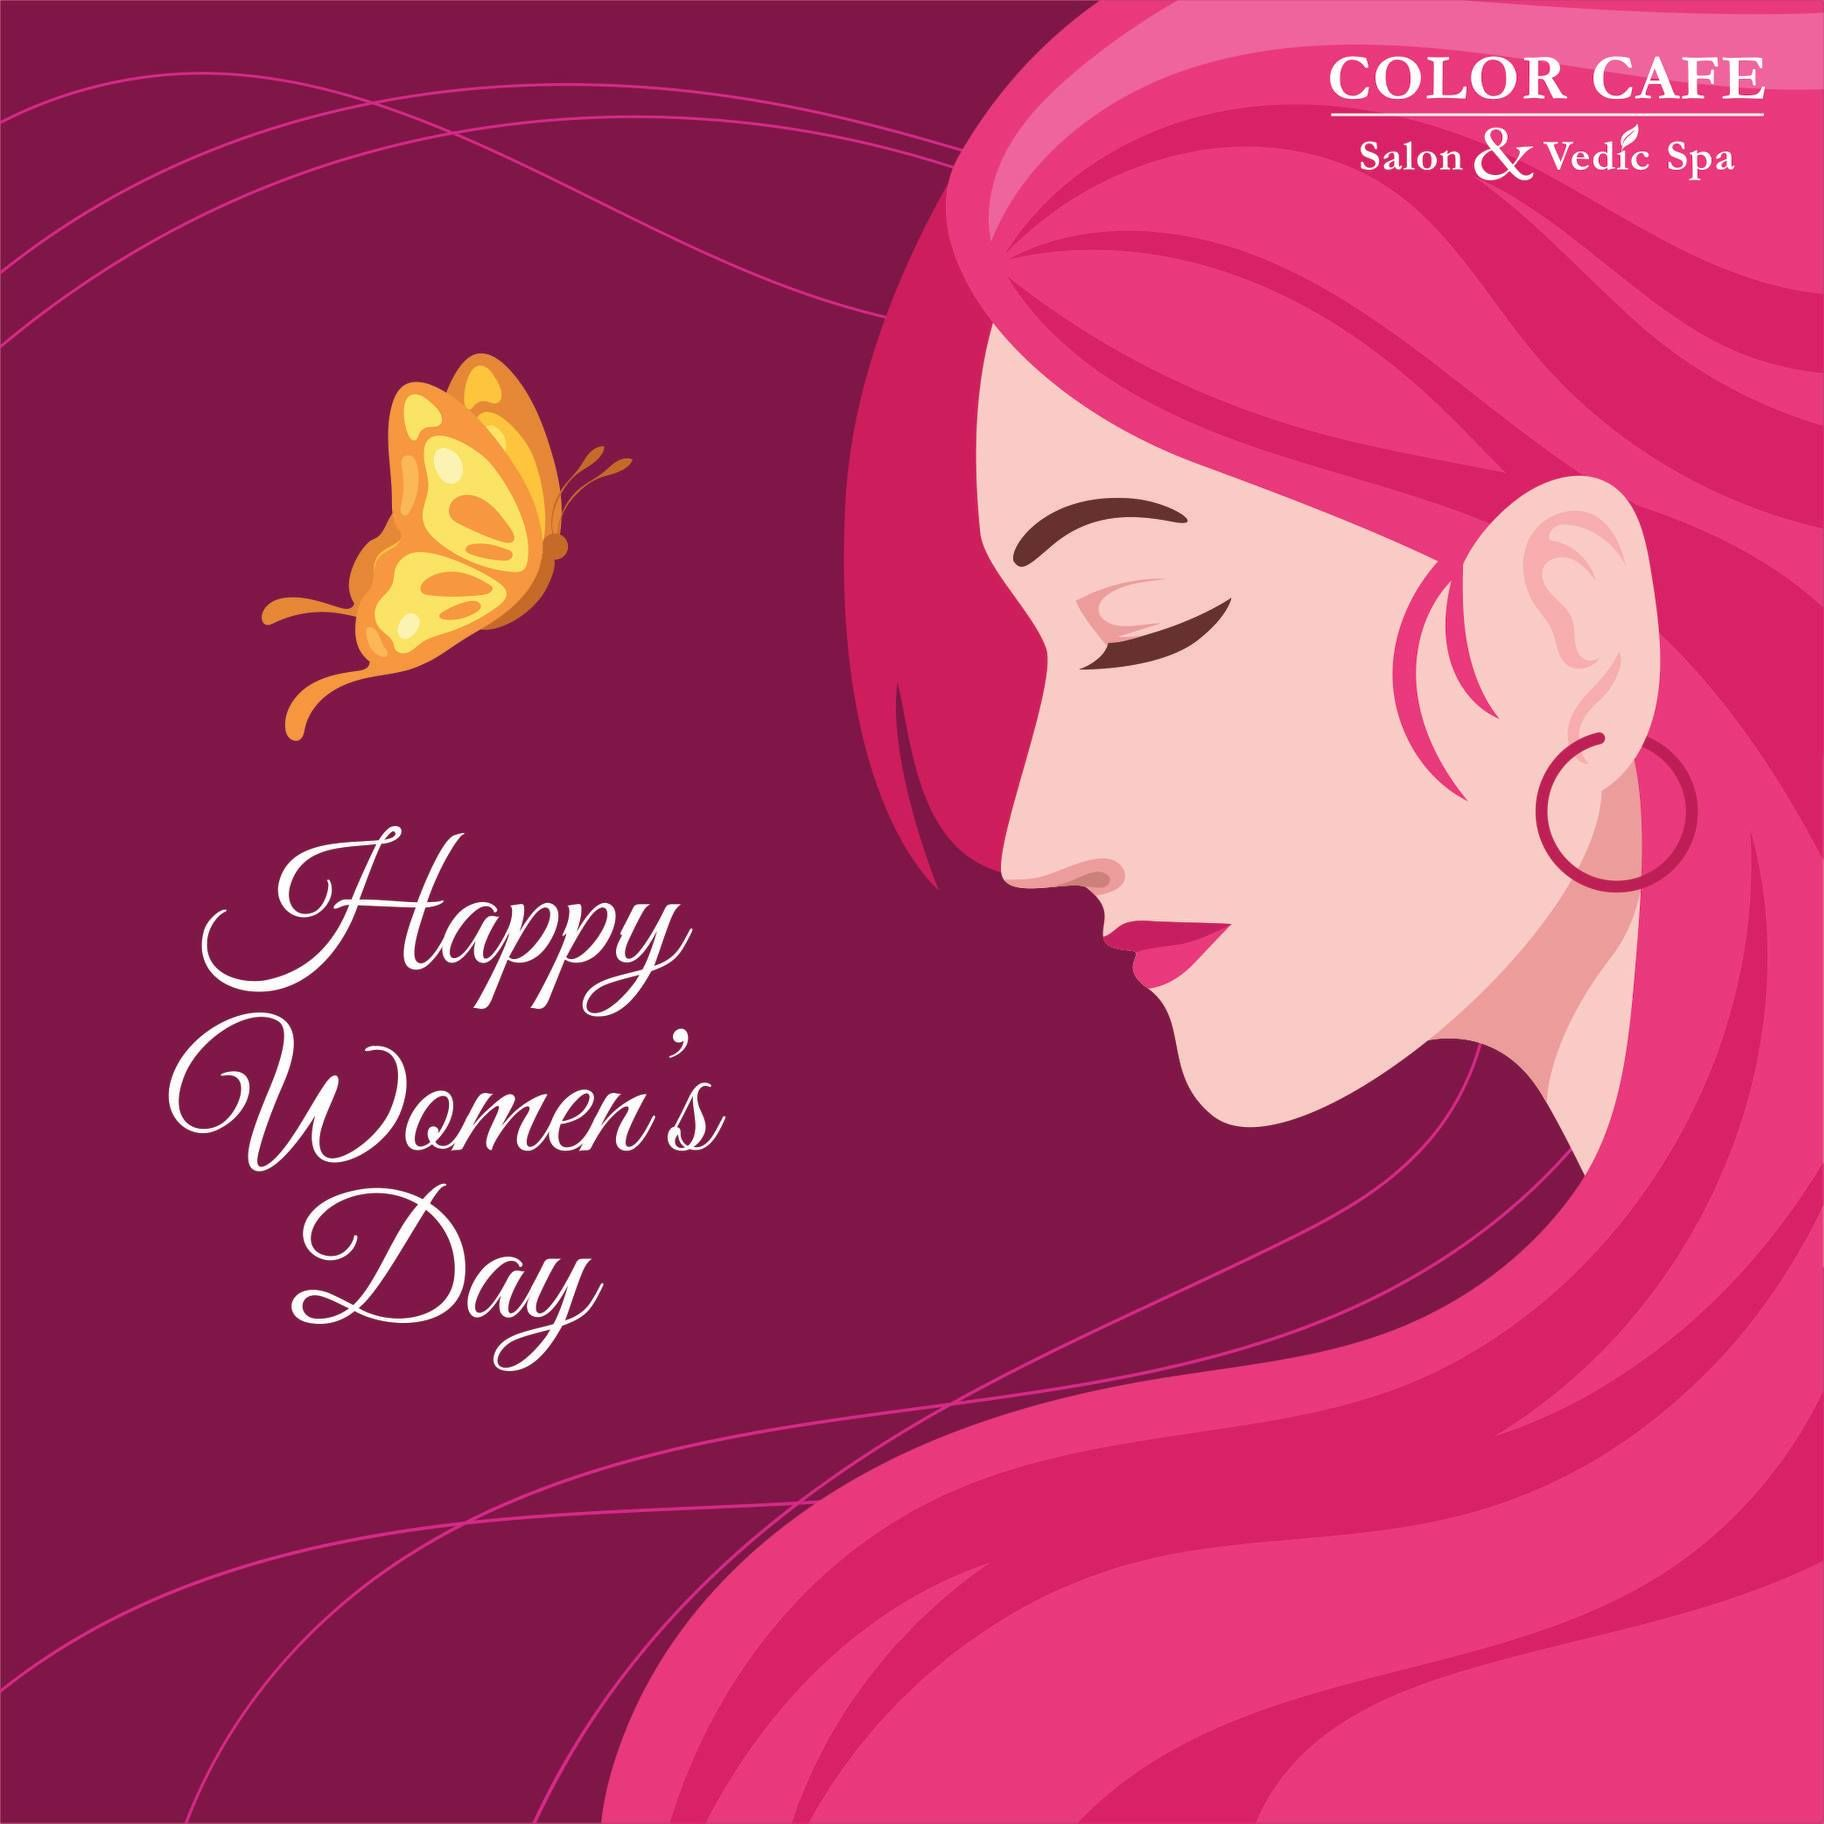 Color Cafe Wish You A Happy Women S Day Happy Woman Day Ladies Day International Women S Day Wishes